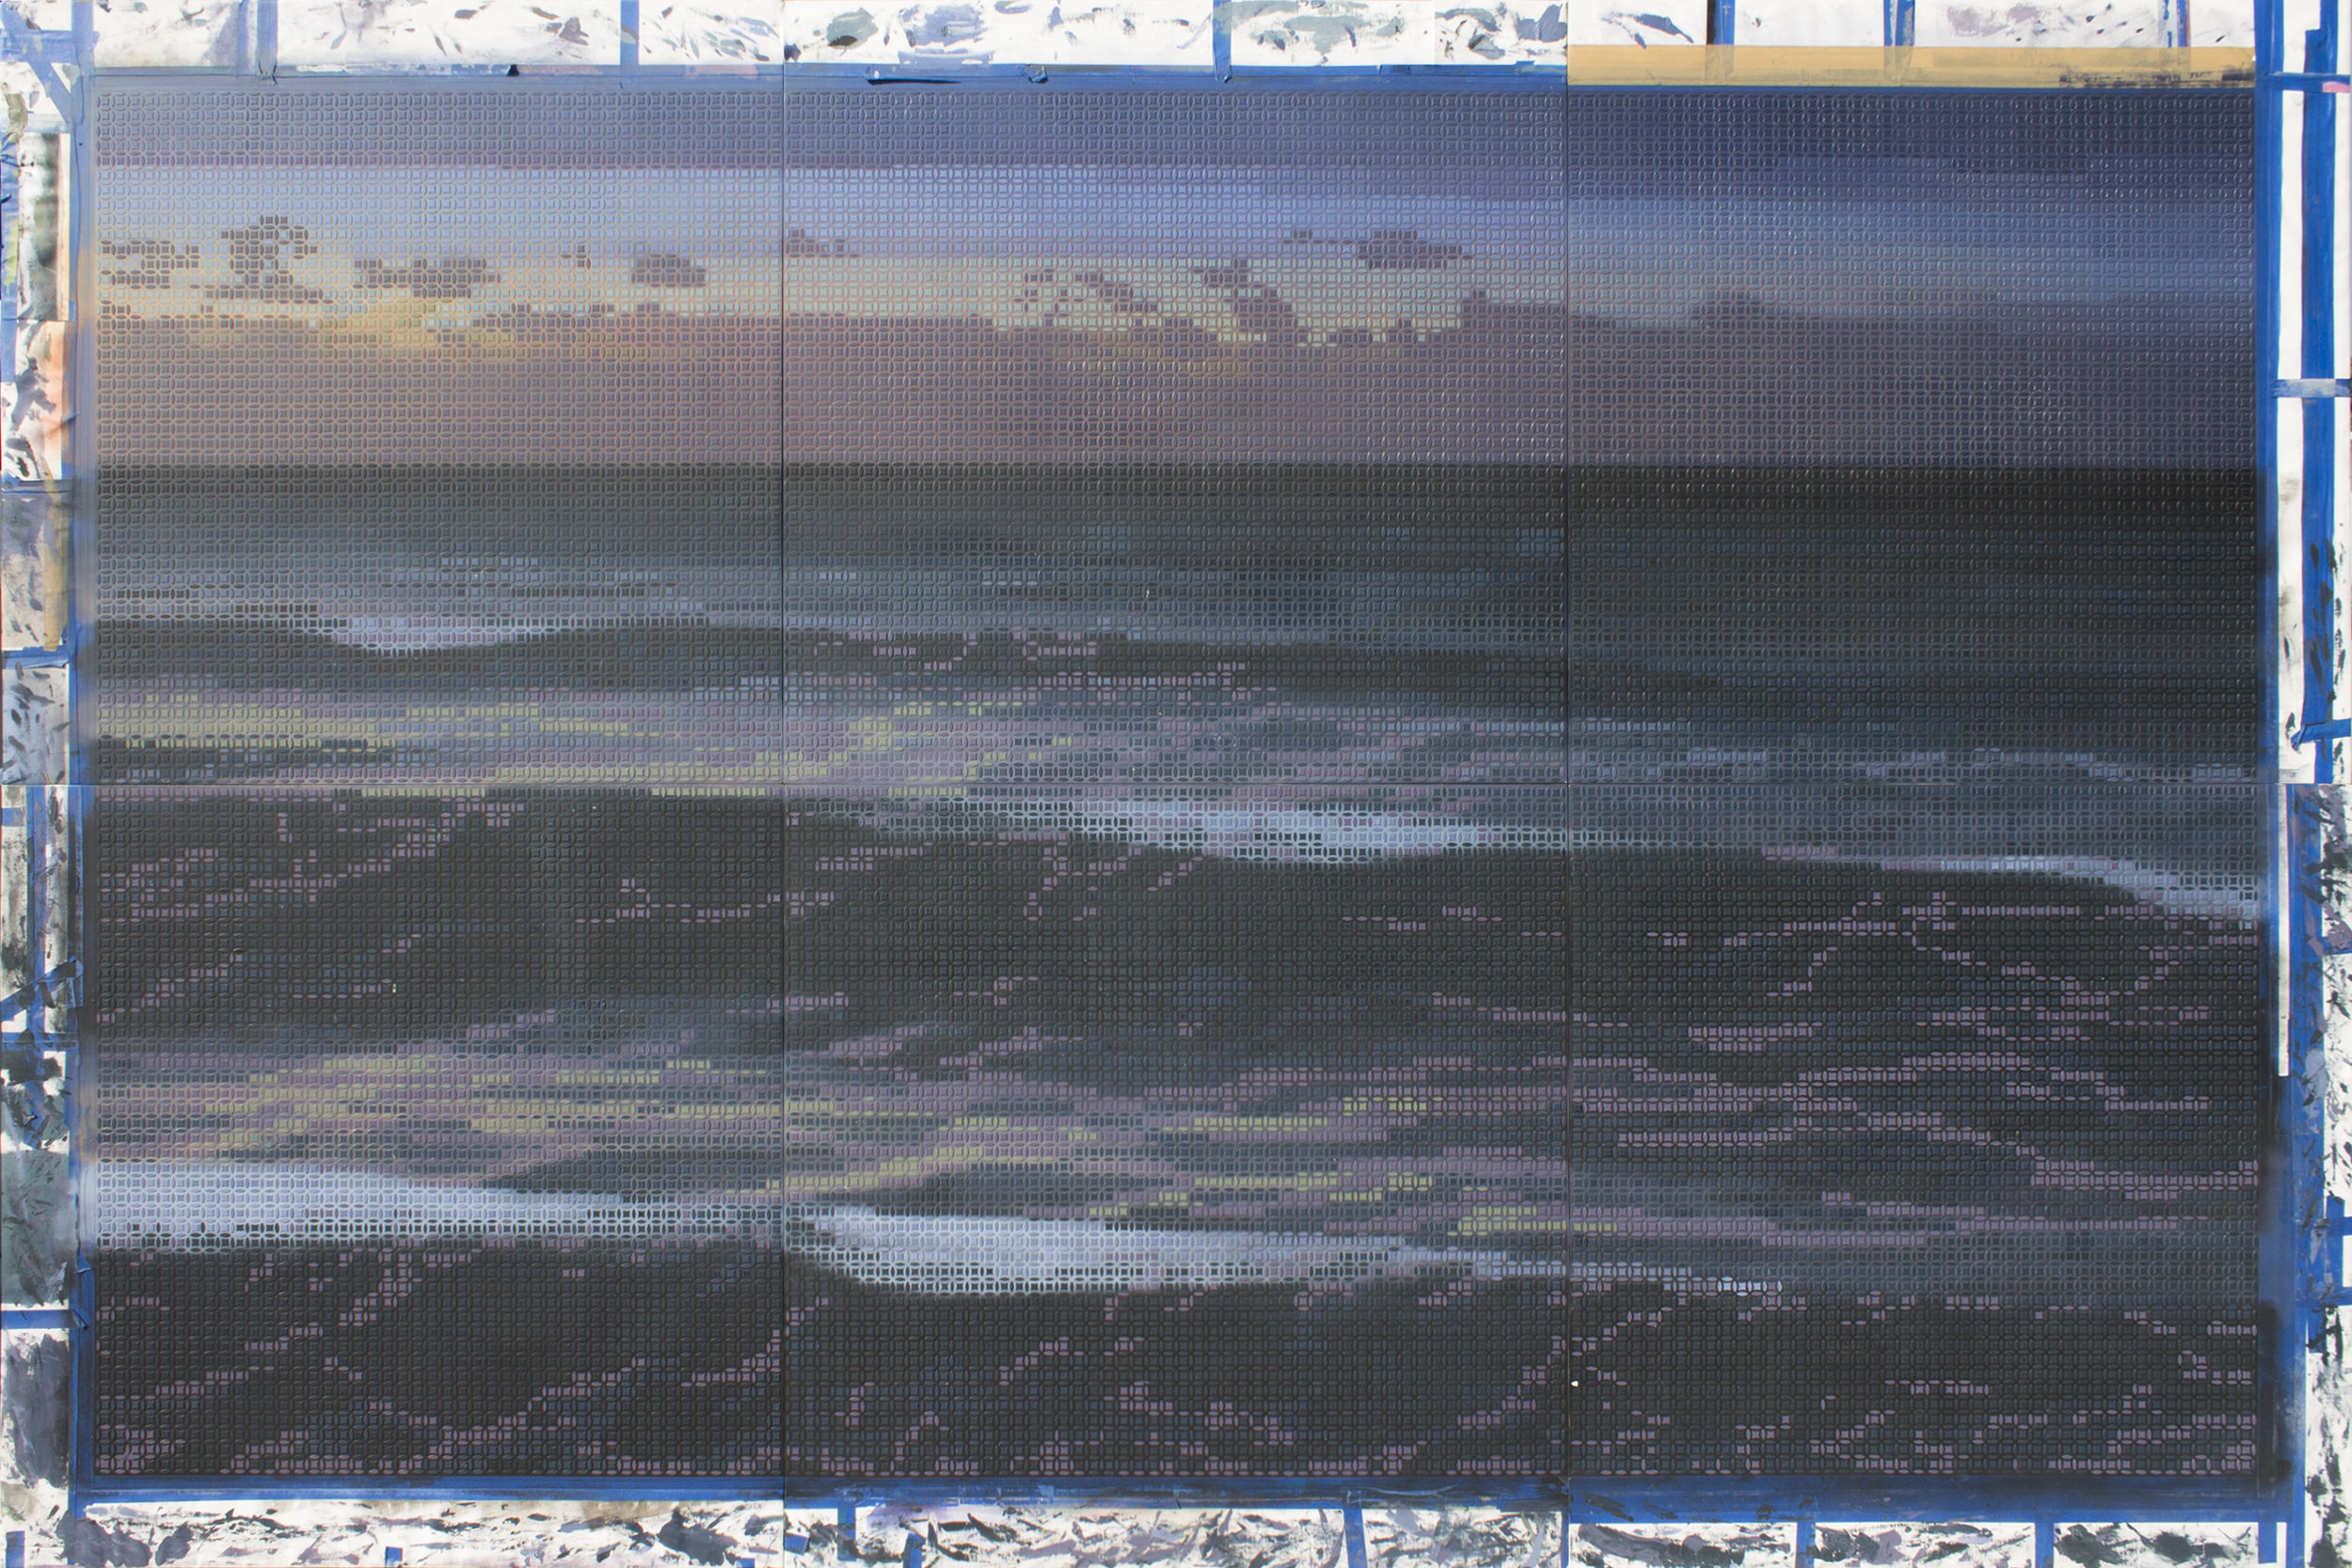 Roger Toledo,  Al Anochecer (At Dusk) , 2018, Acrylic on canvas, 78 3/4 x 118 inches (200 x 300 cm); Comprised by six panels of 39 3/8 x 39 3/8 inches (100 x 100 cm).